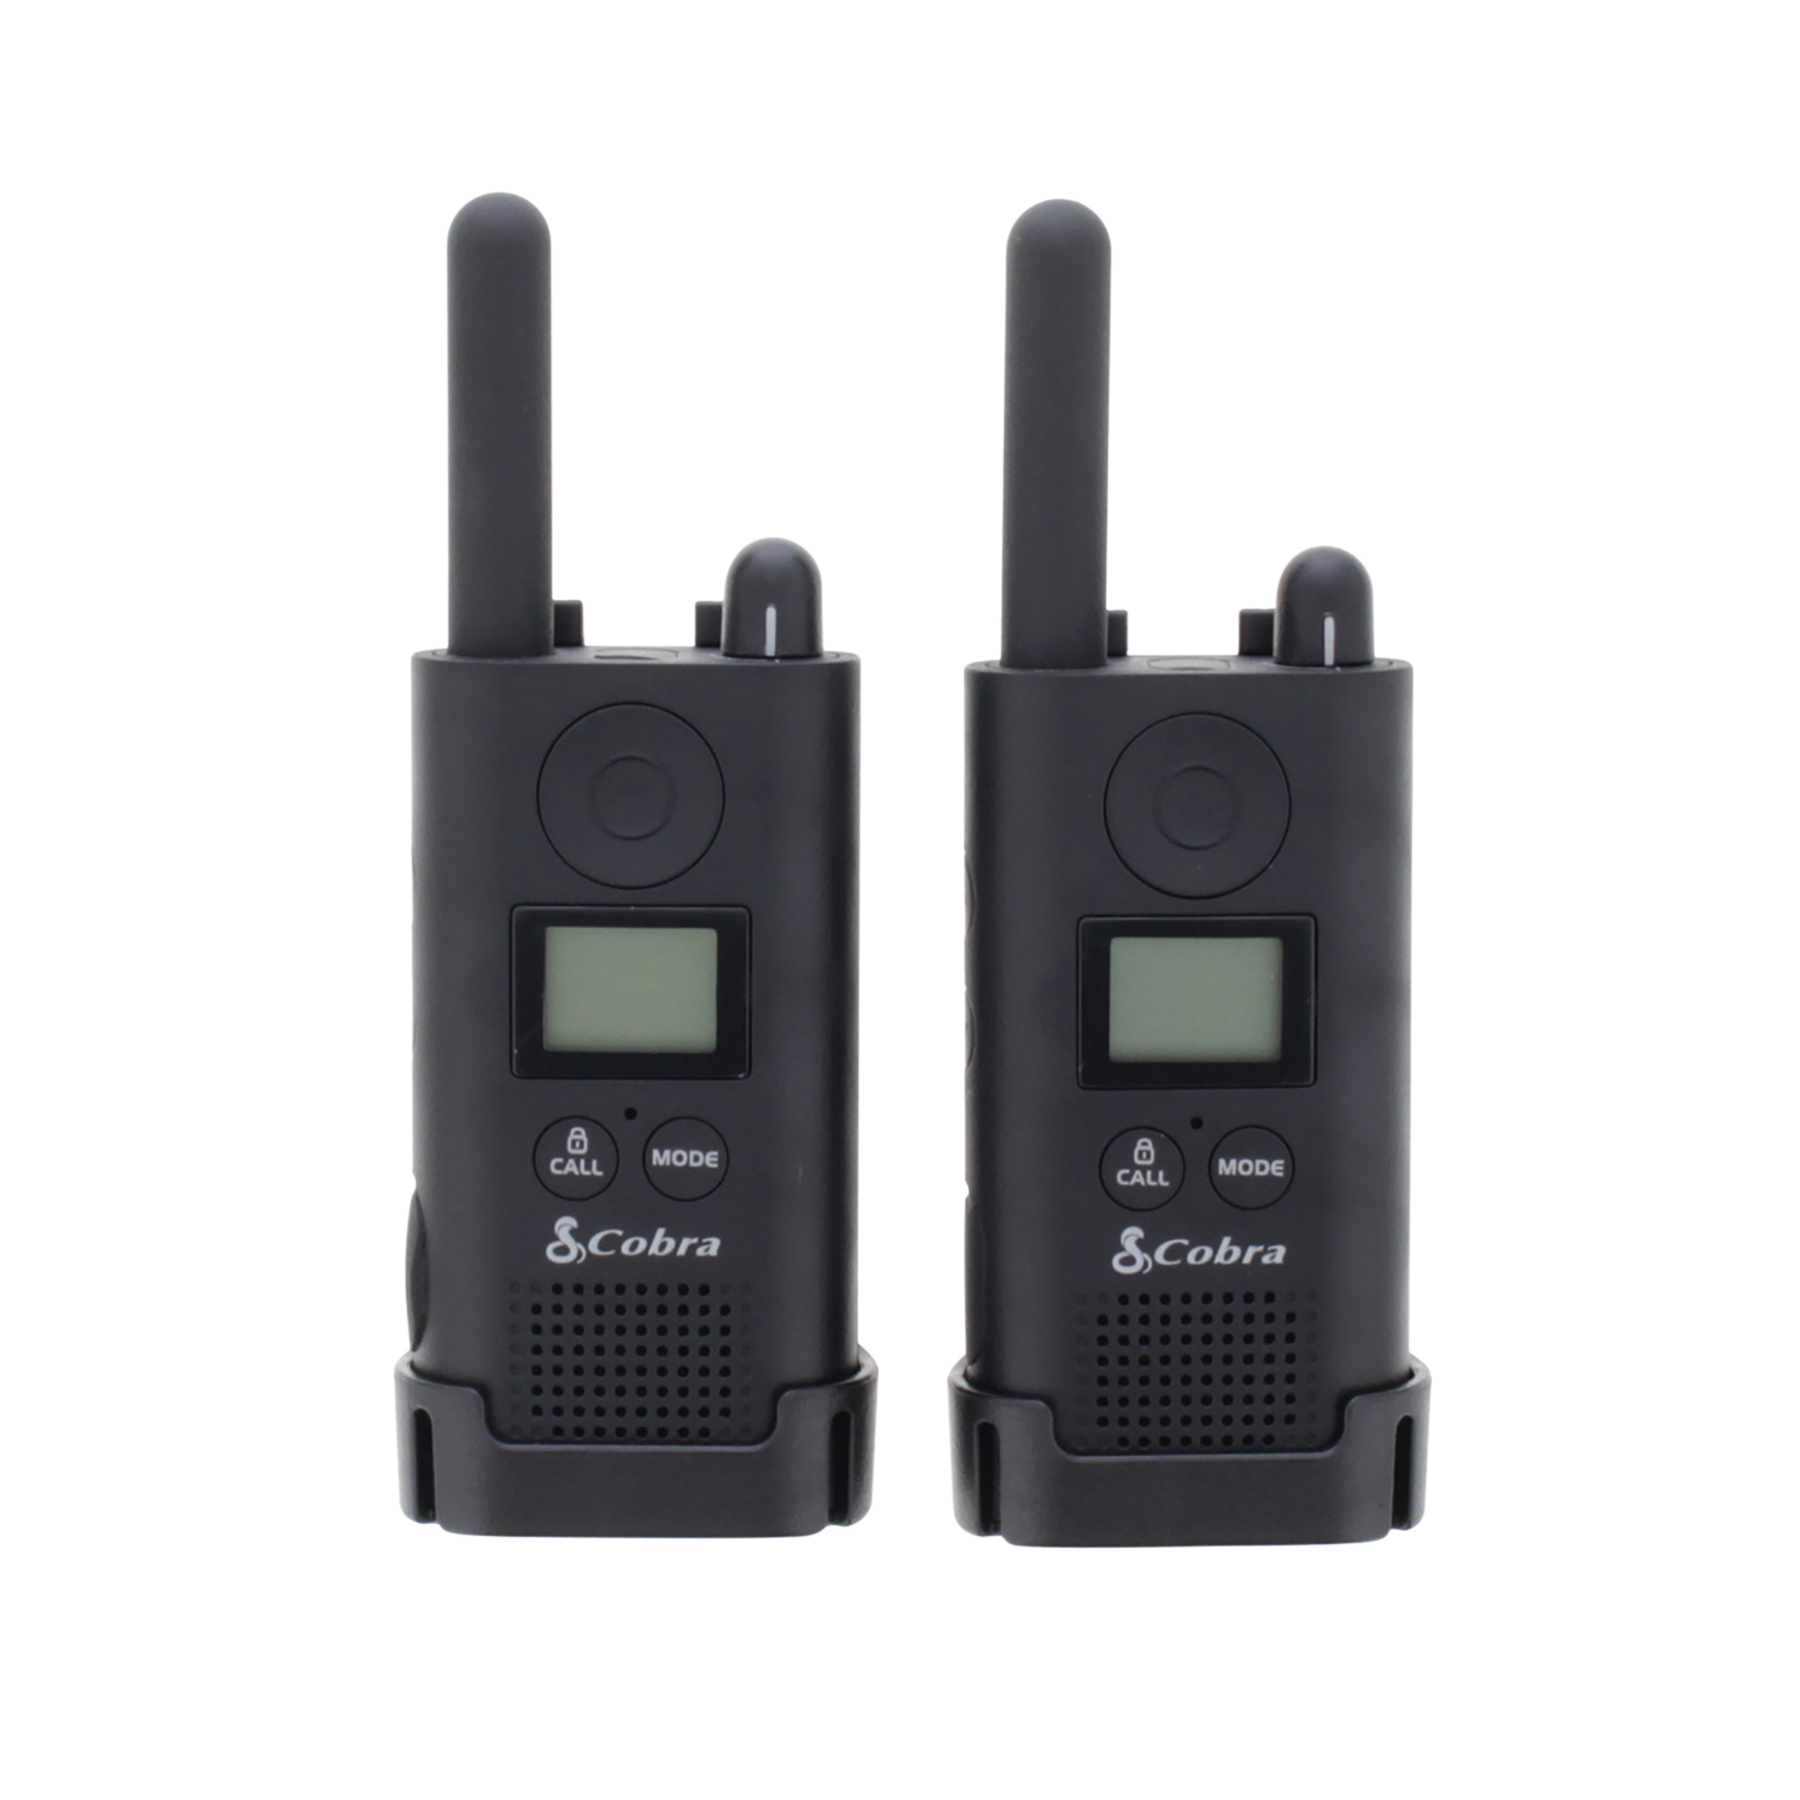 Cobra PU 500 Pro Business Two Way Radios 16 Preset Channels Range 8km Ref PU500B+SV-01 Pair